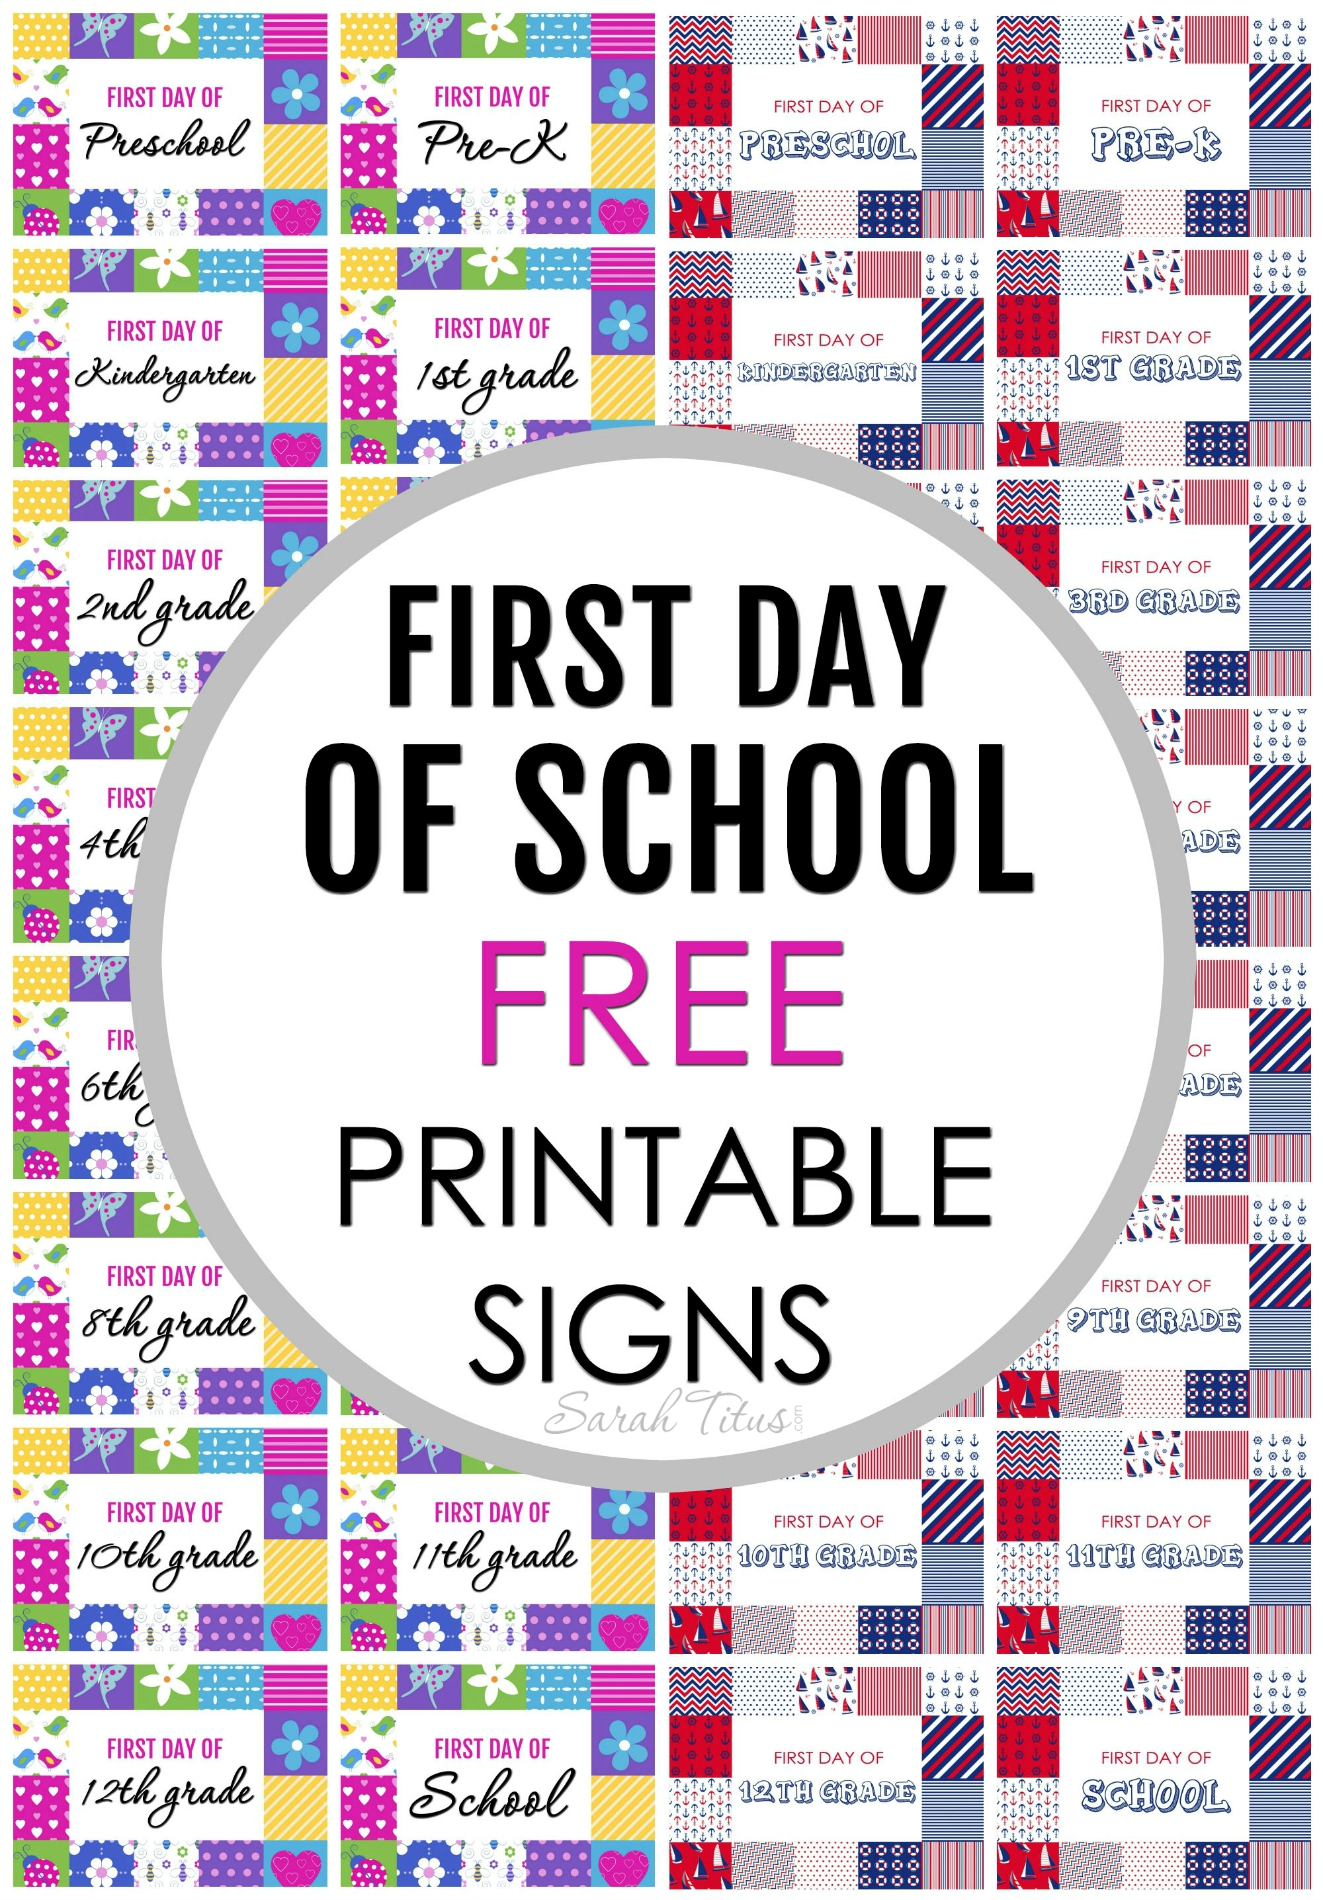 Maybe you're sending your child off to school for the first time to Kindergarten or they are in 6th grade and you're scratching your head, wondering where the time went. That's why I created these free first day of school printable signs for you!